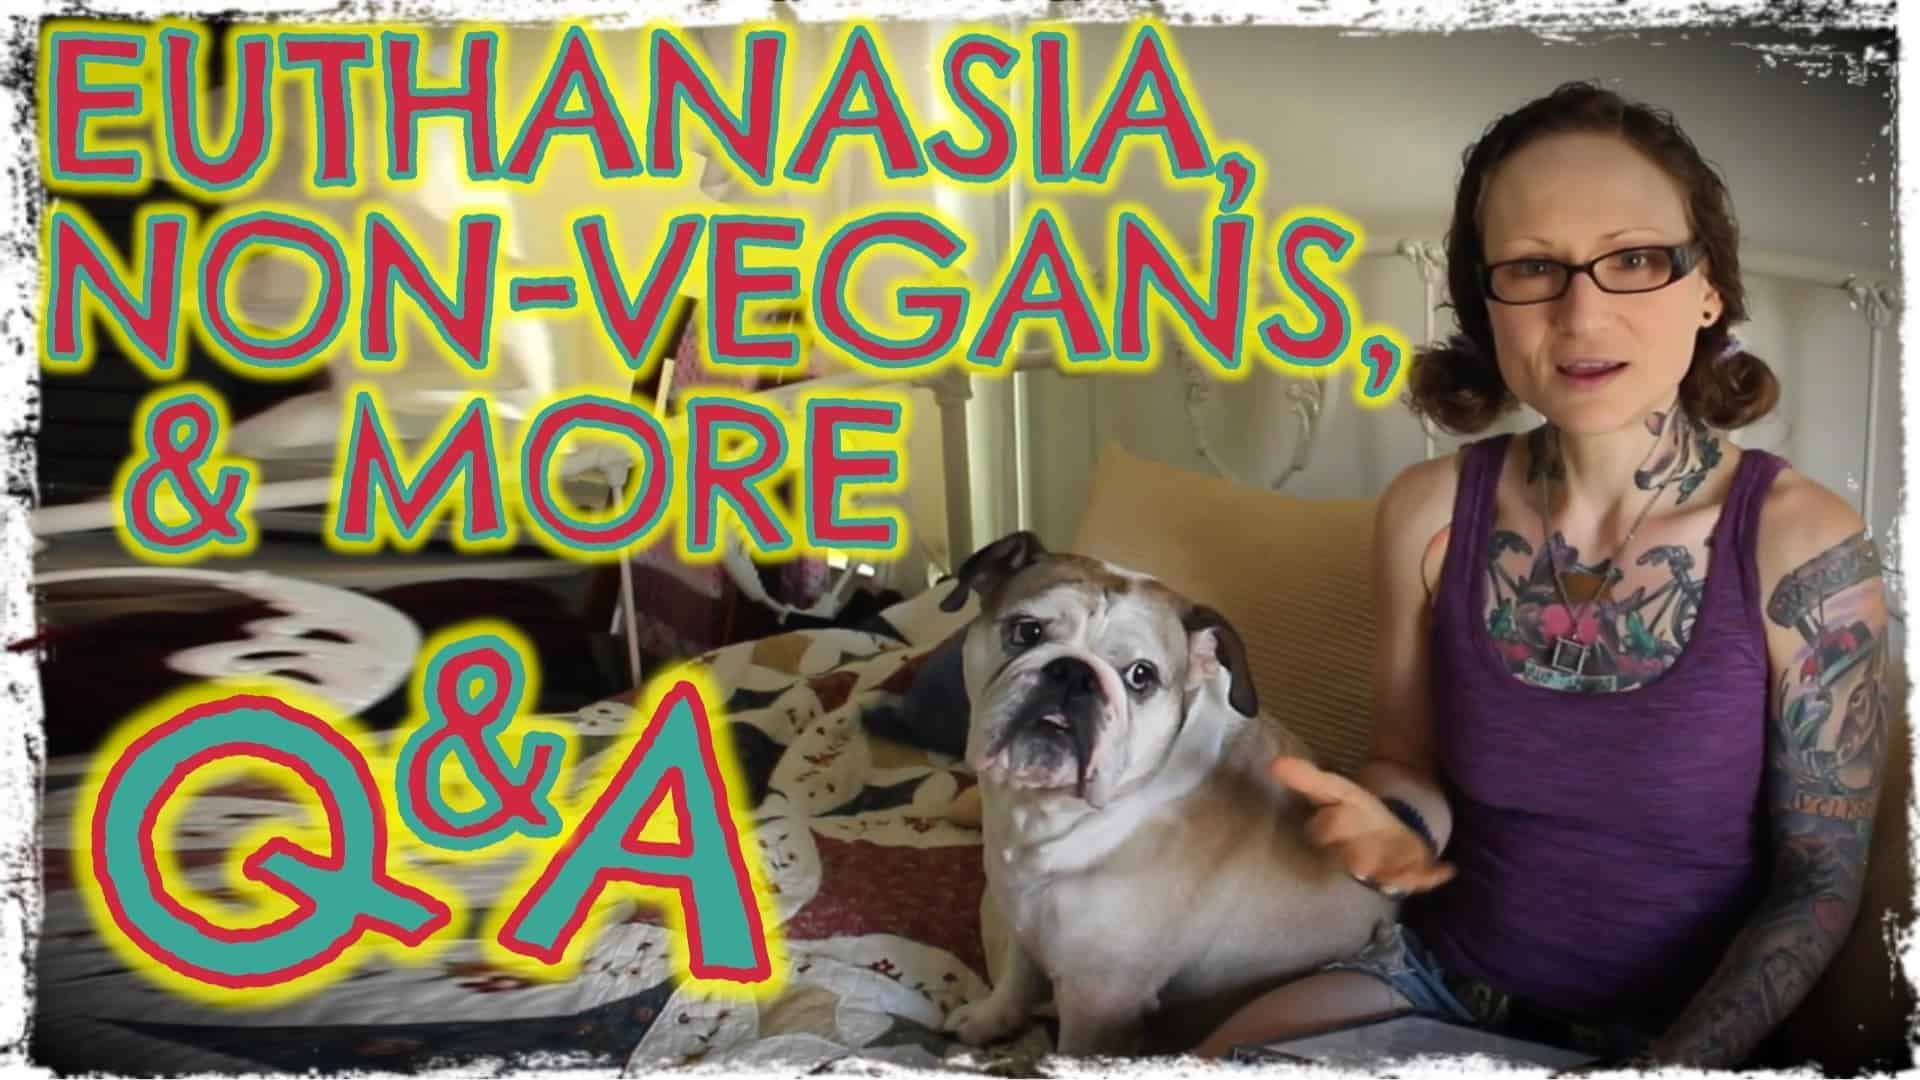 """Emily Moran Barwick of Bite Size Vegan is shown sat on a bed with her beloved bulldog, Ooby, next to her. She islooking at the camera. To the left in large letters are the words: """"Euthanasia, non-vegans and more. Q and A""""."""